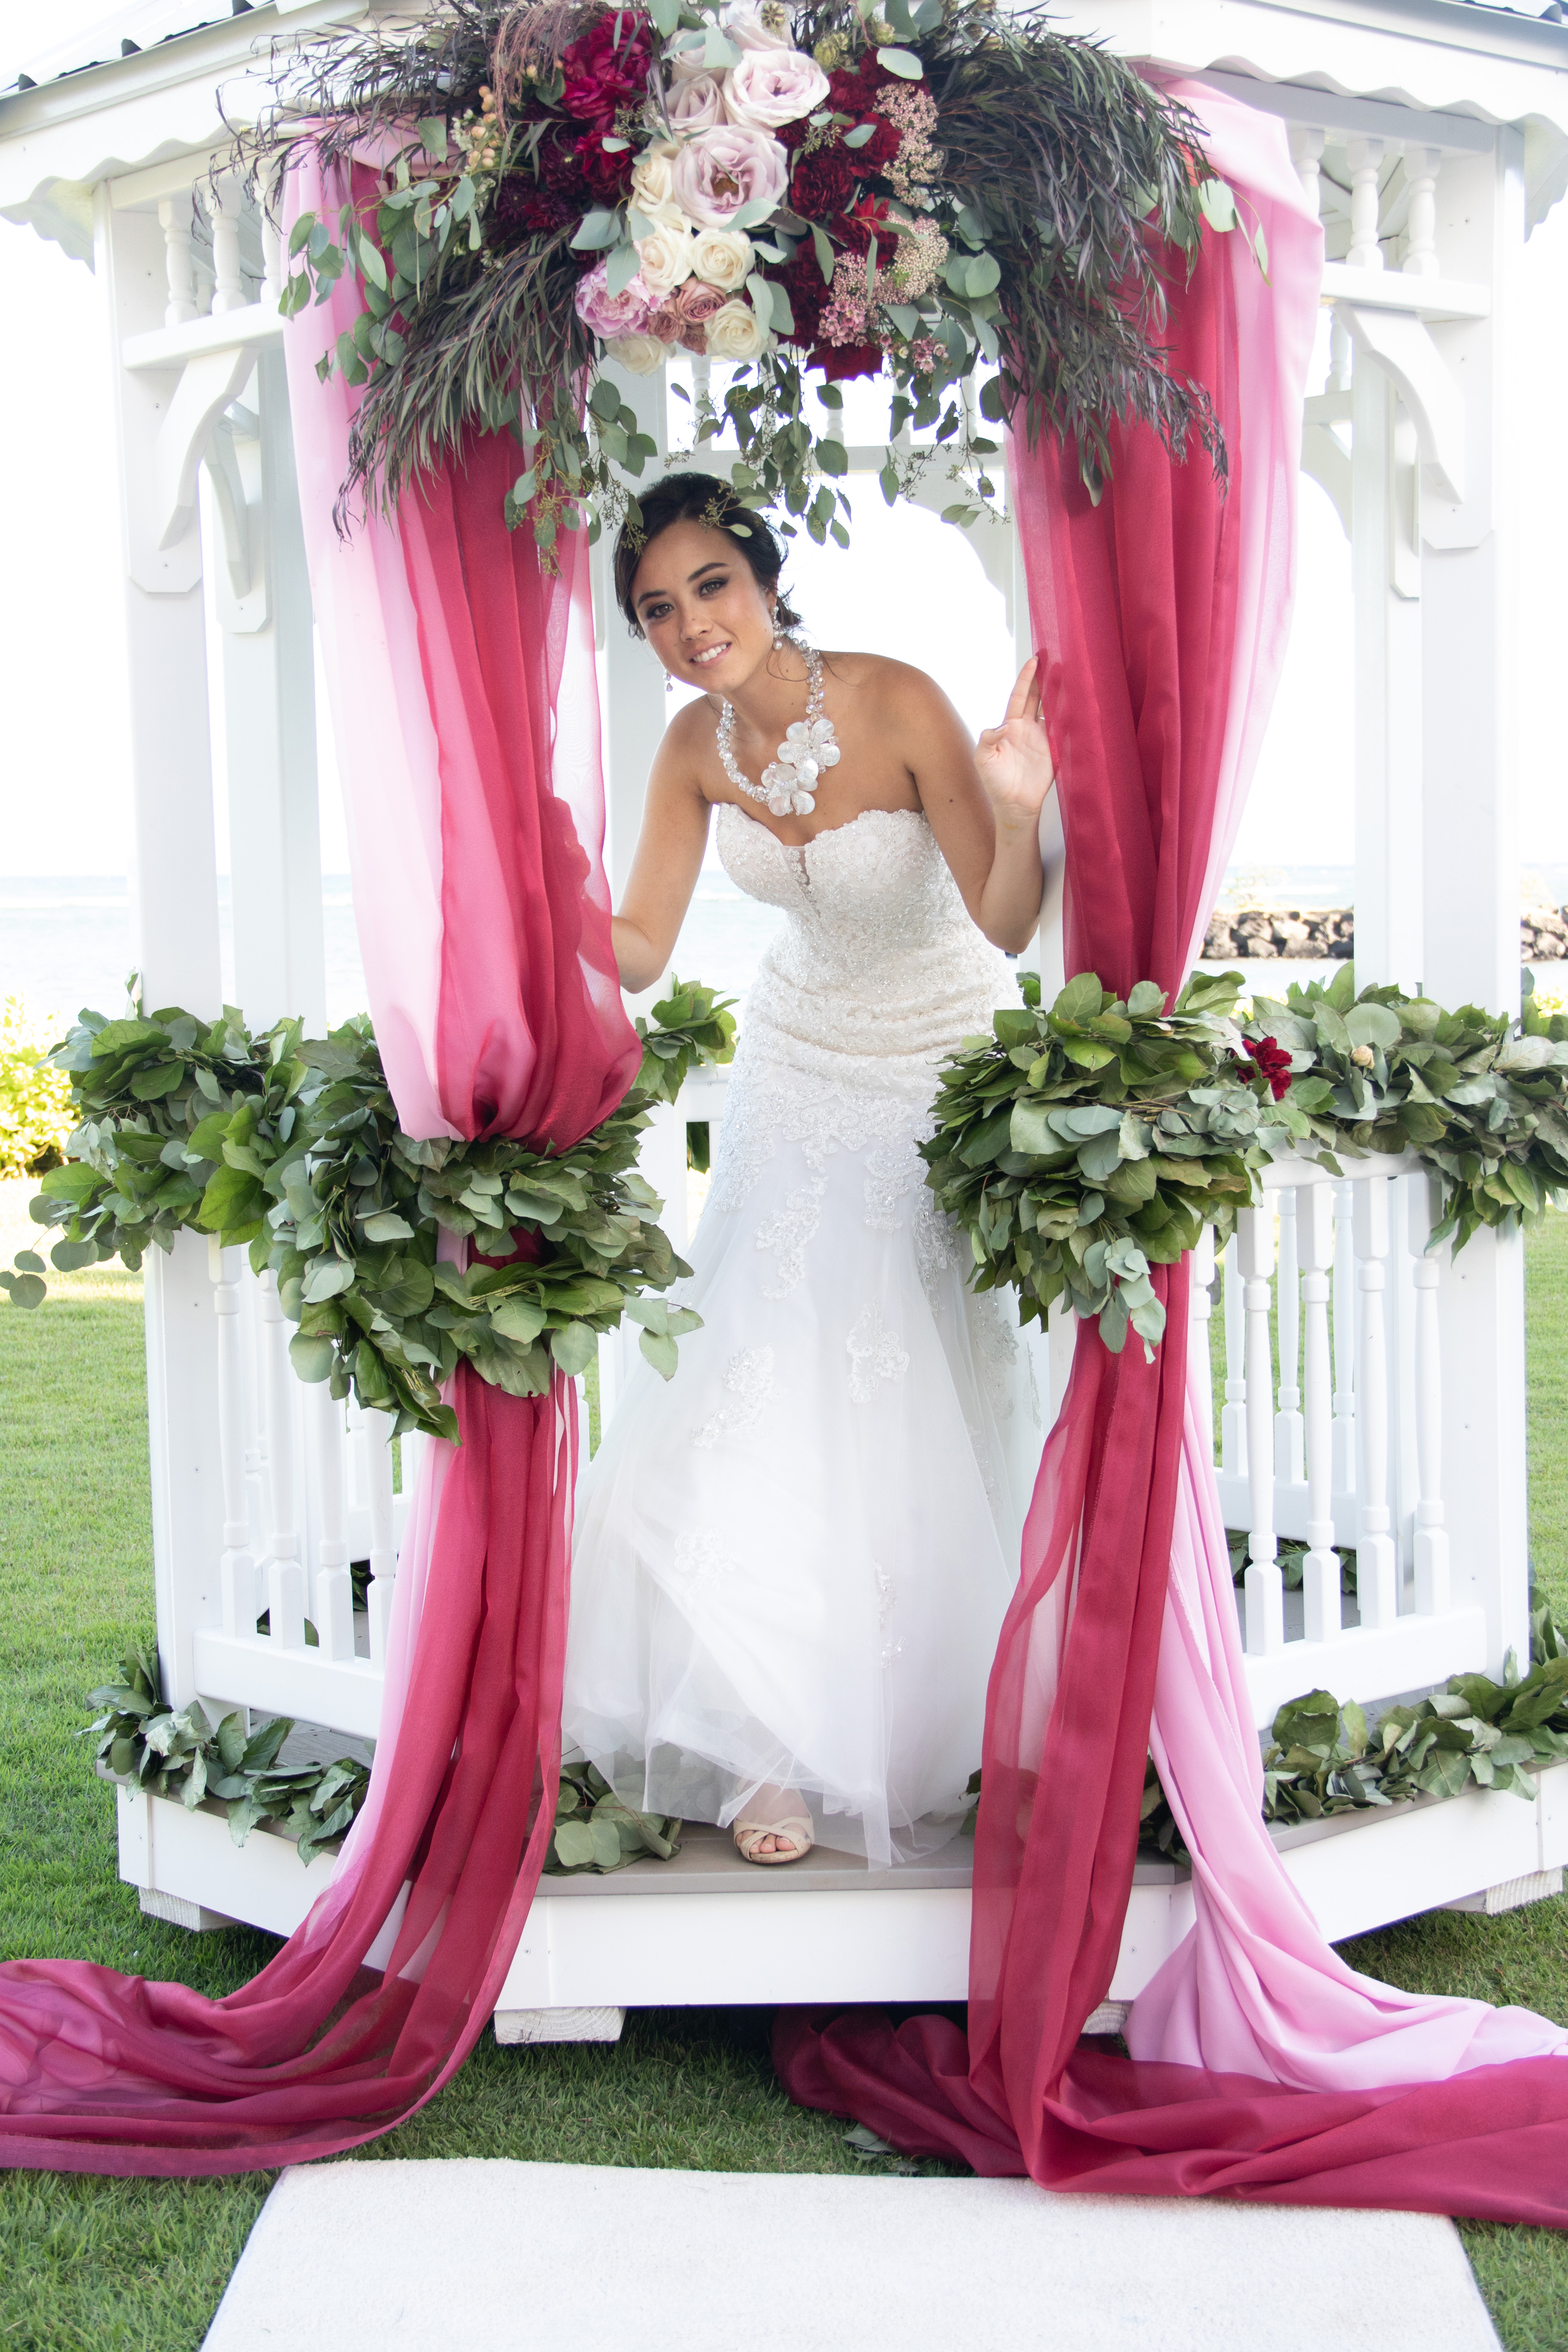 f582d9e601 The Best of Hawaii s World Class Professional Wedding Services ...